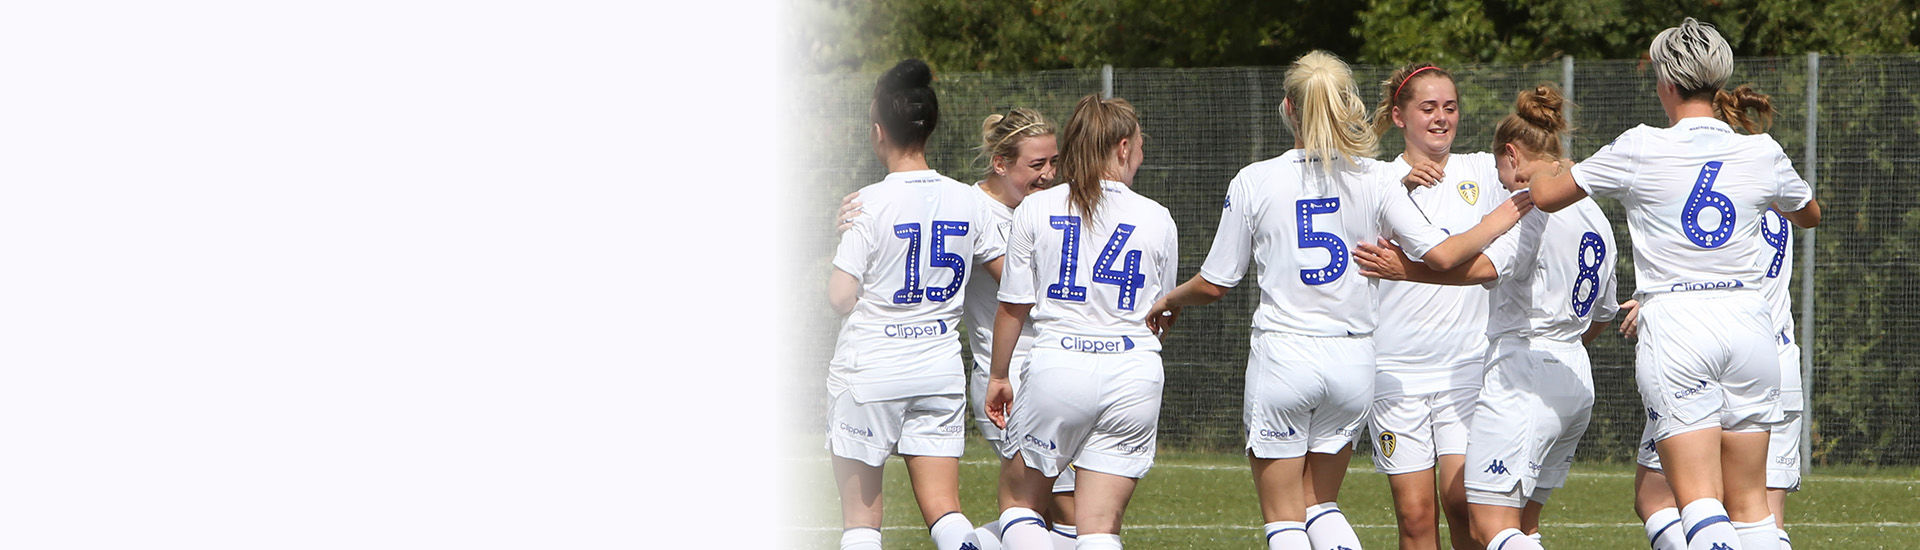 REPORT: ALNWICK TOWN 2-3 LEEDS UNITED LADIES